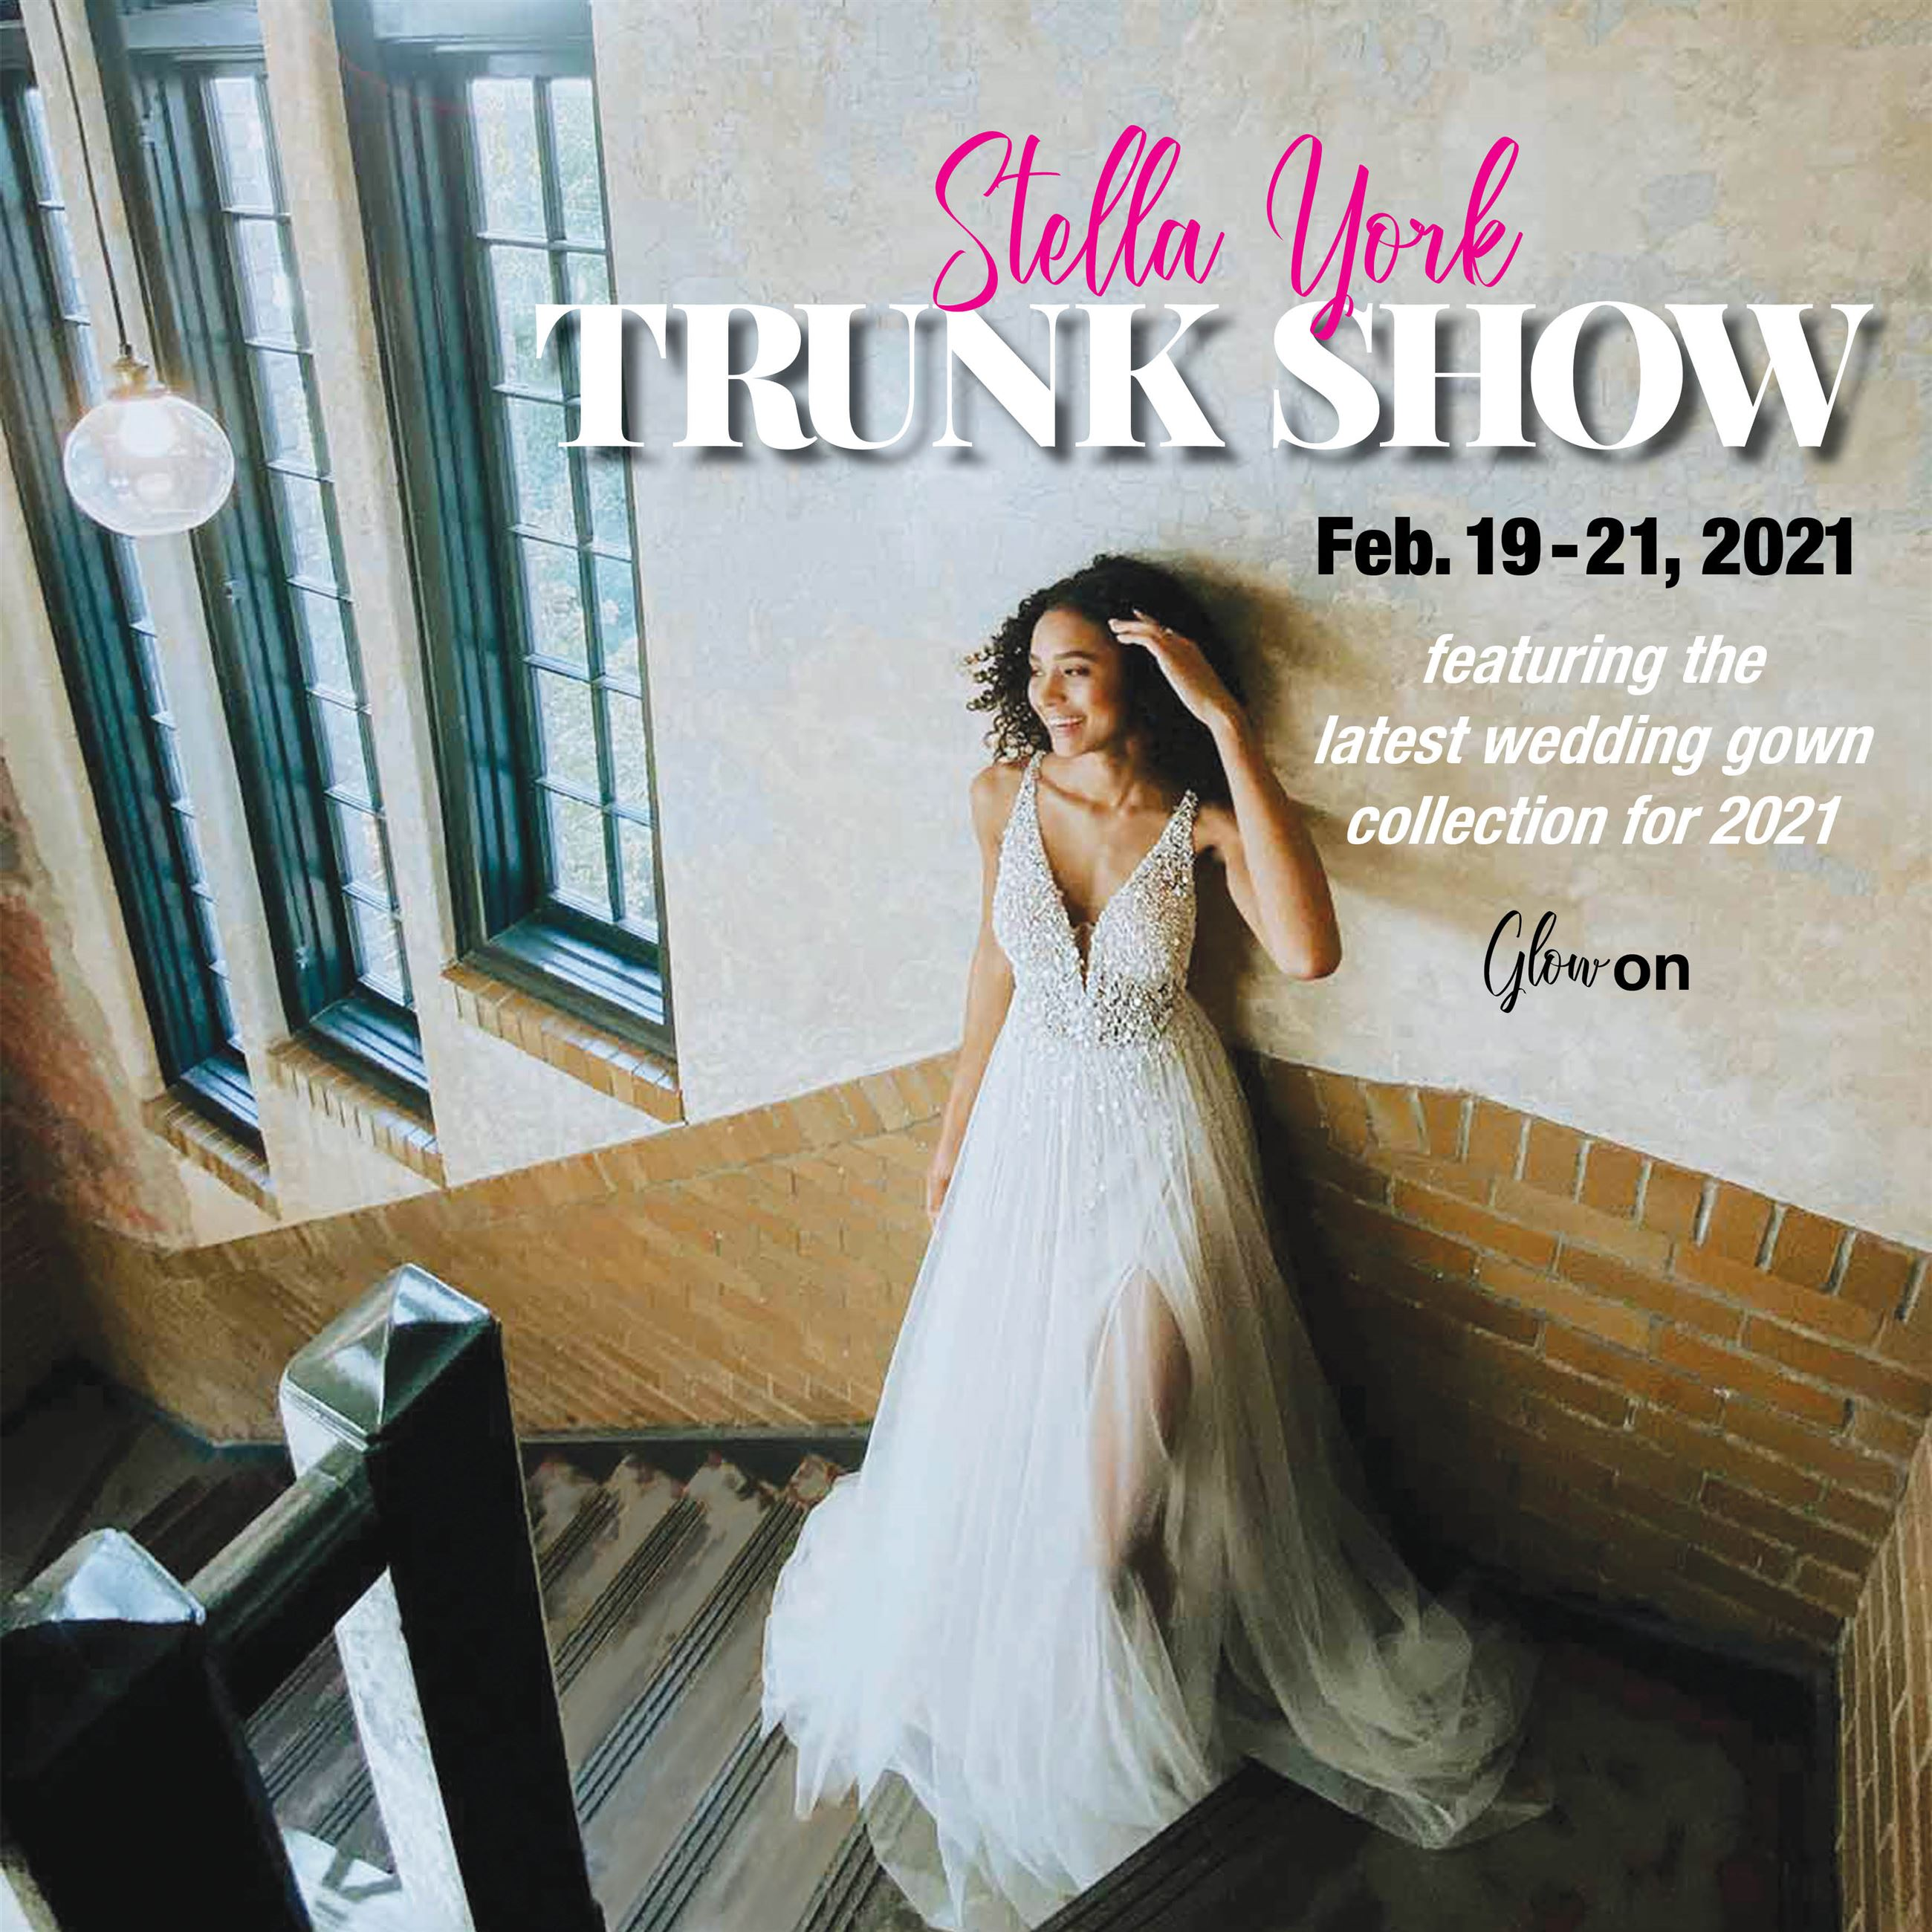 A Stella York TRUNK SHOW Main Image